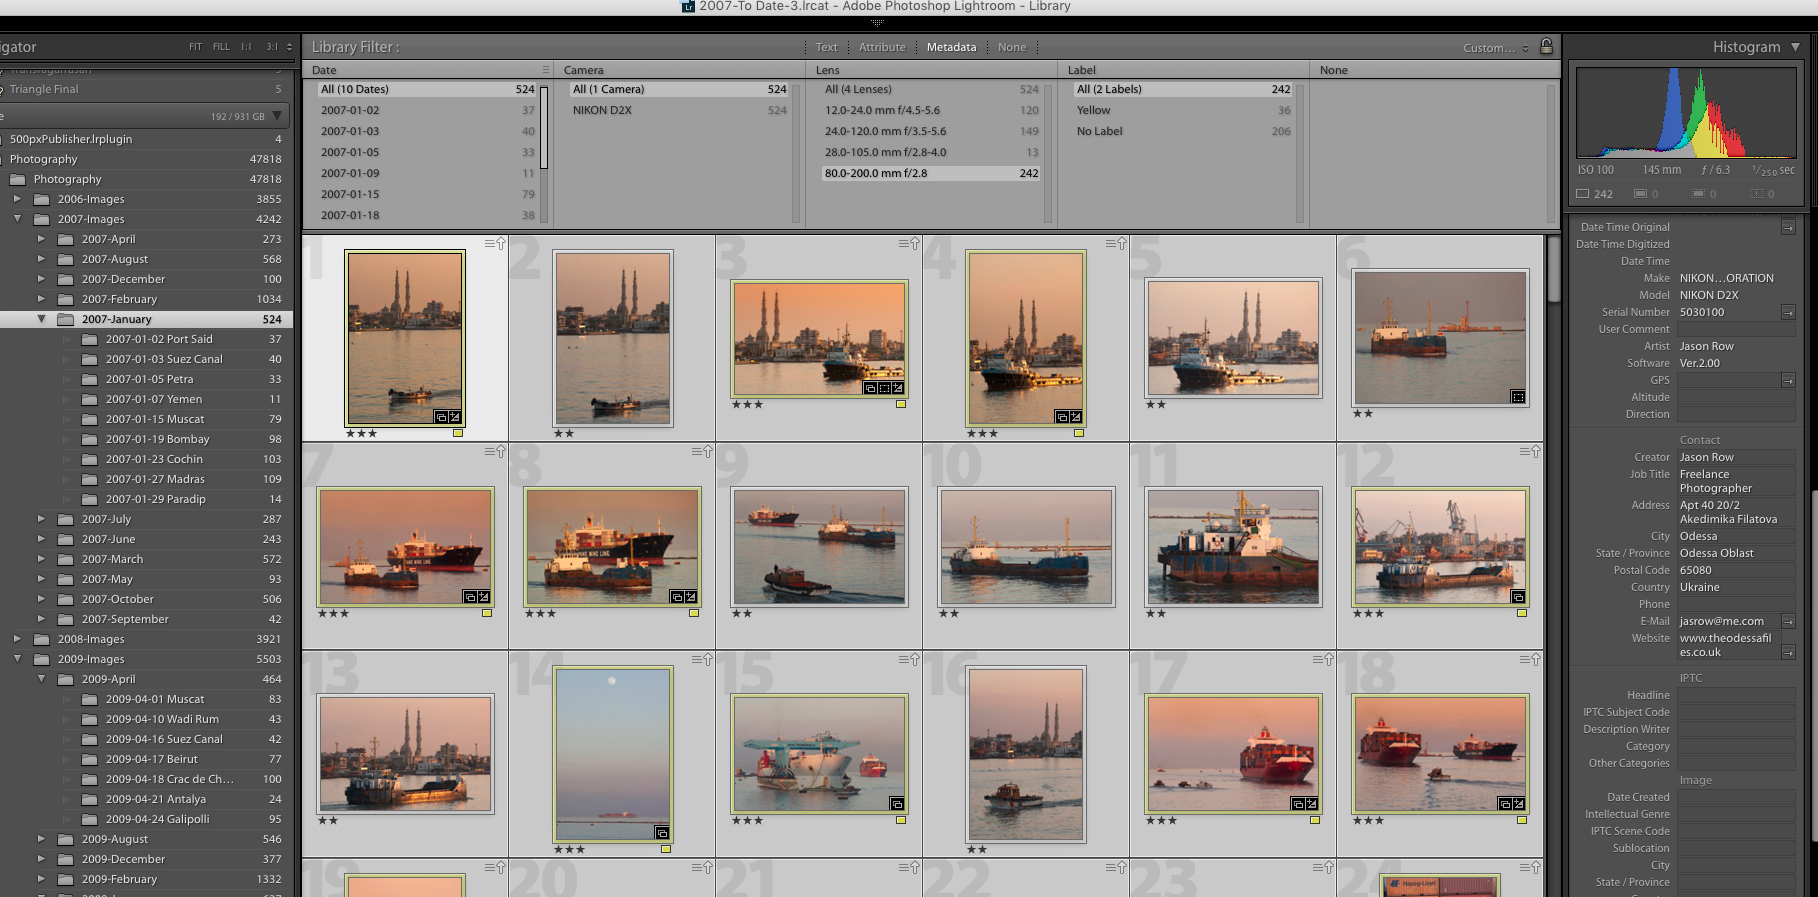 You can use EXIF data to search for images in Lightroom